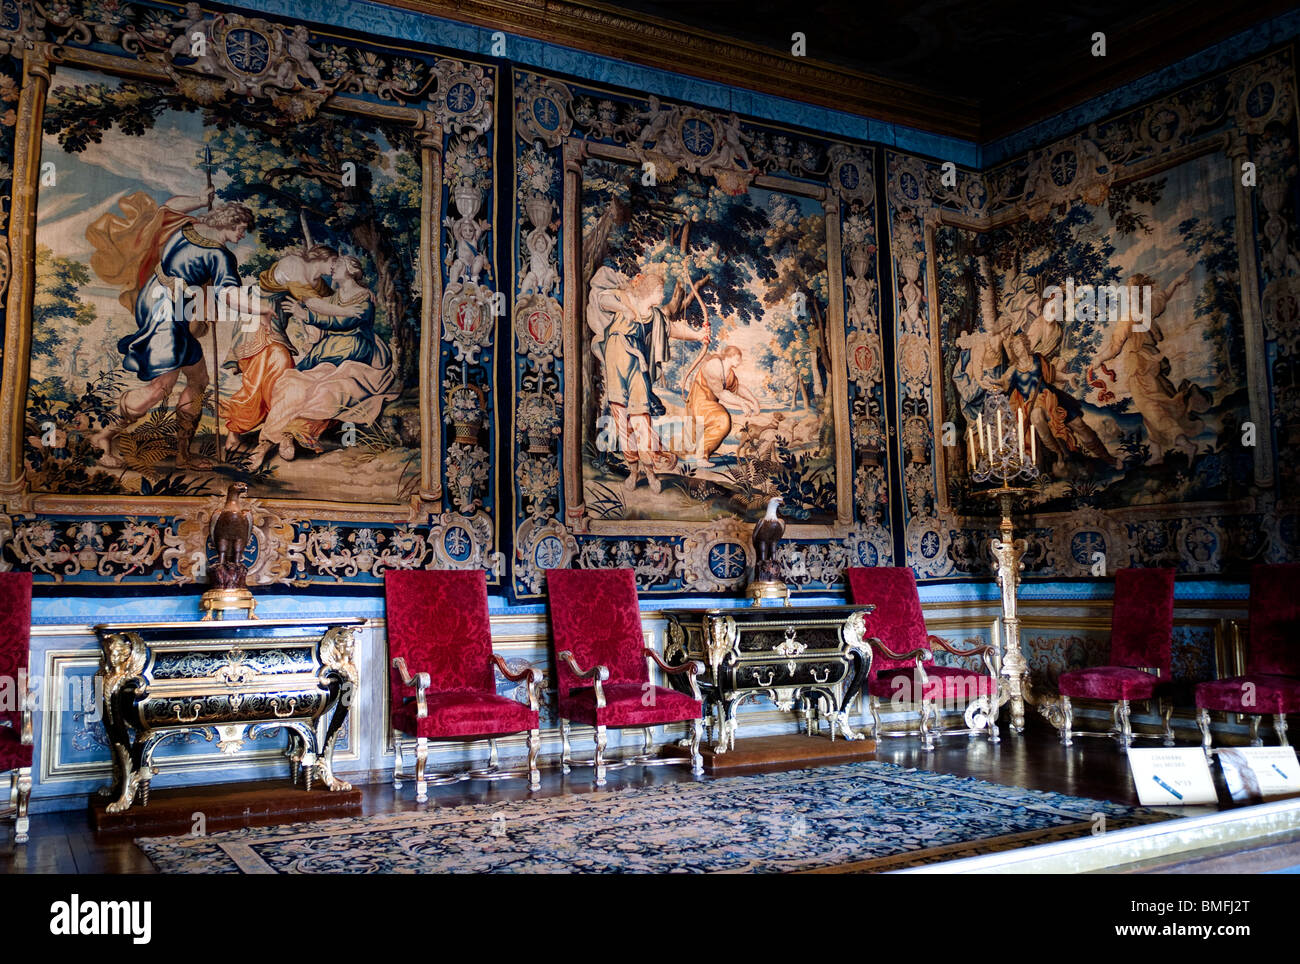 interior, vaux-le-vicomte castle (17c), france stock photo